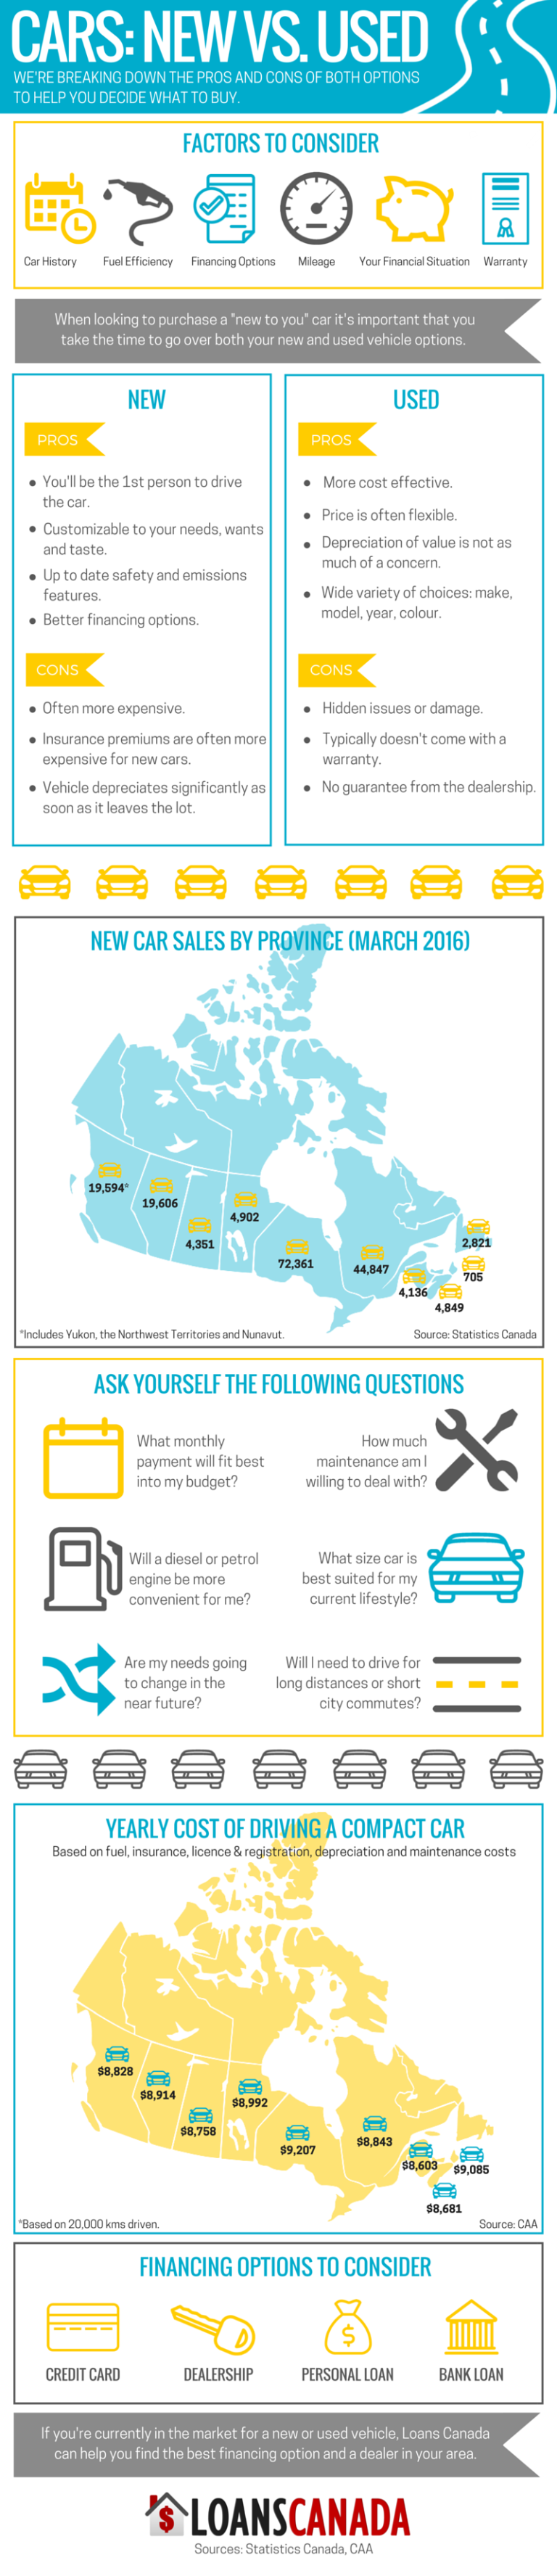 Infographic: New vs. Used Cars